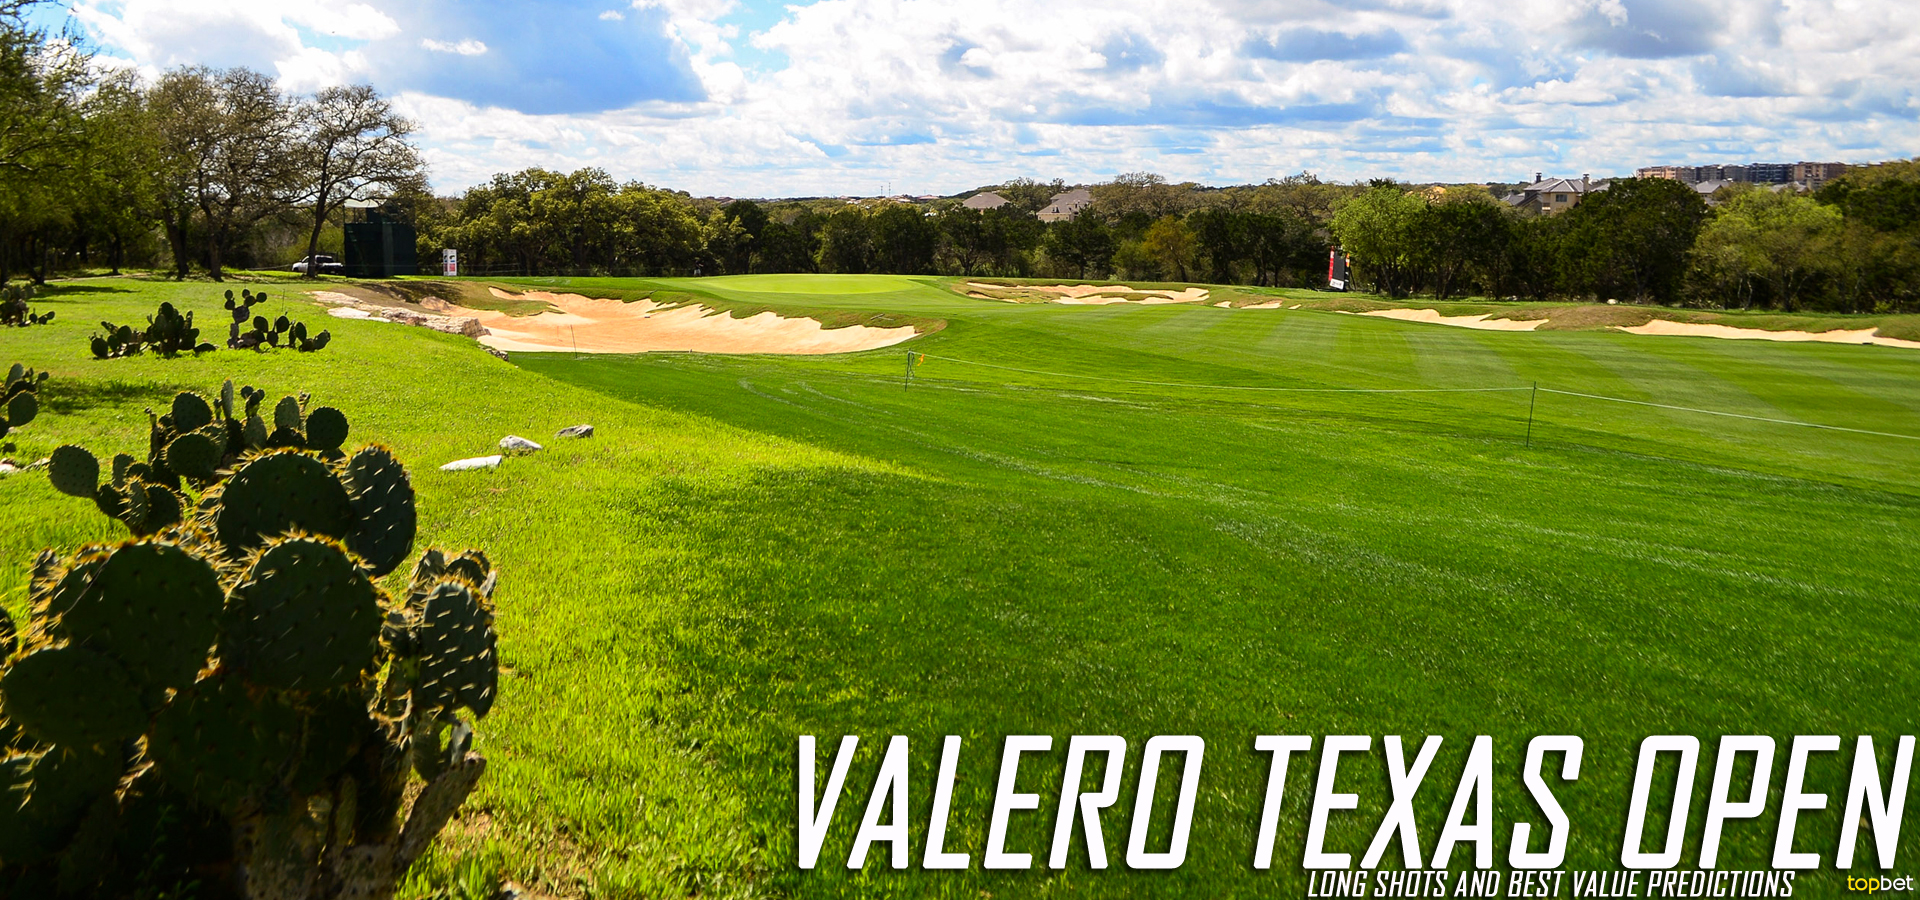 2016 Valero Texas Open Long Shots And Best Value Predictions